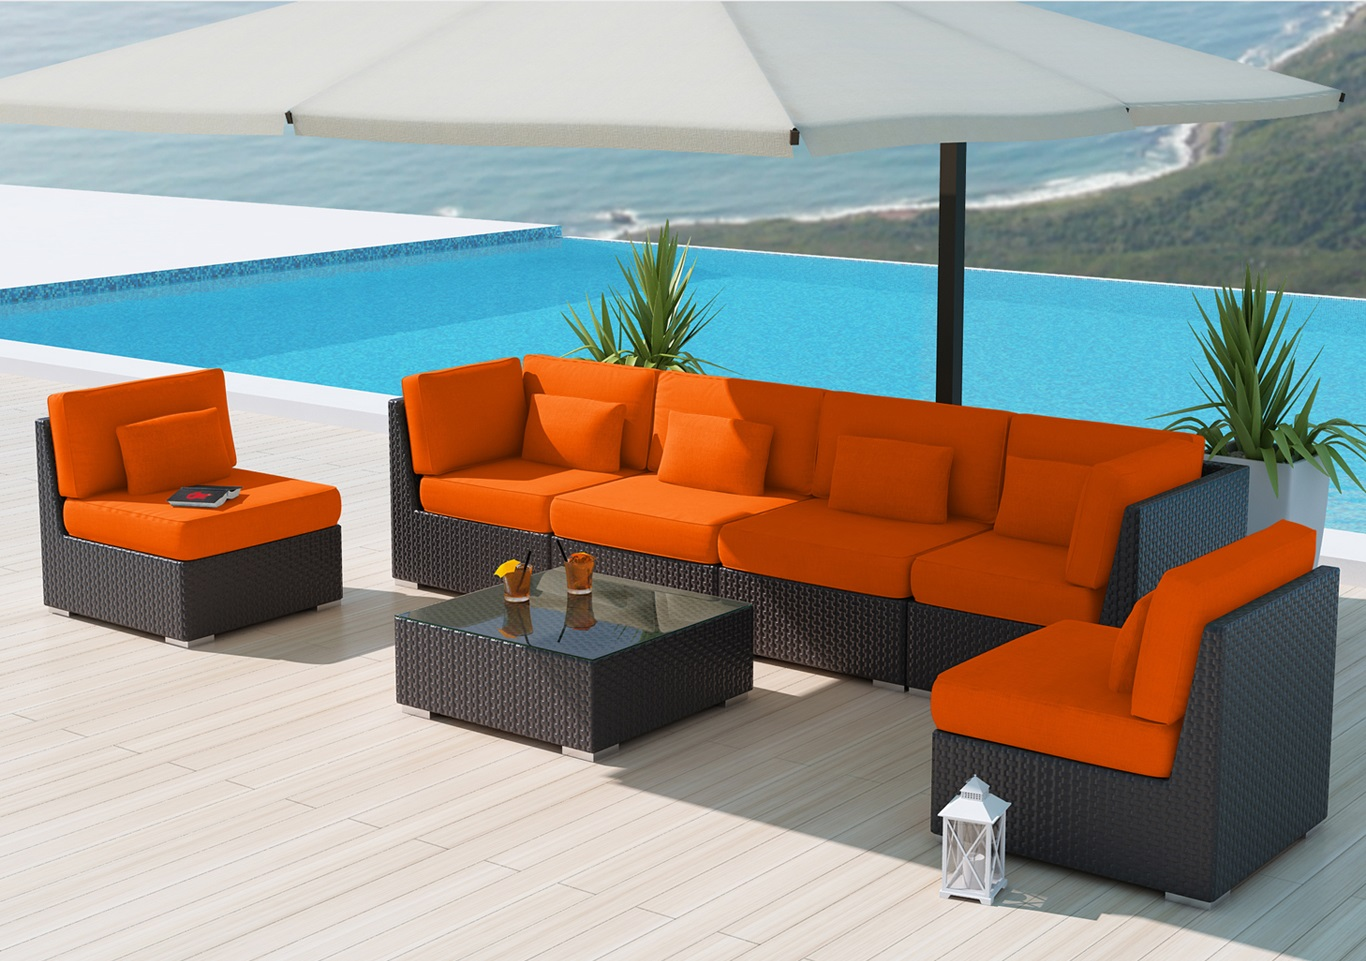 Ten best patio furniture brands for outdoor living for Top 10 best furniture brands